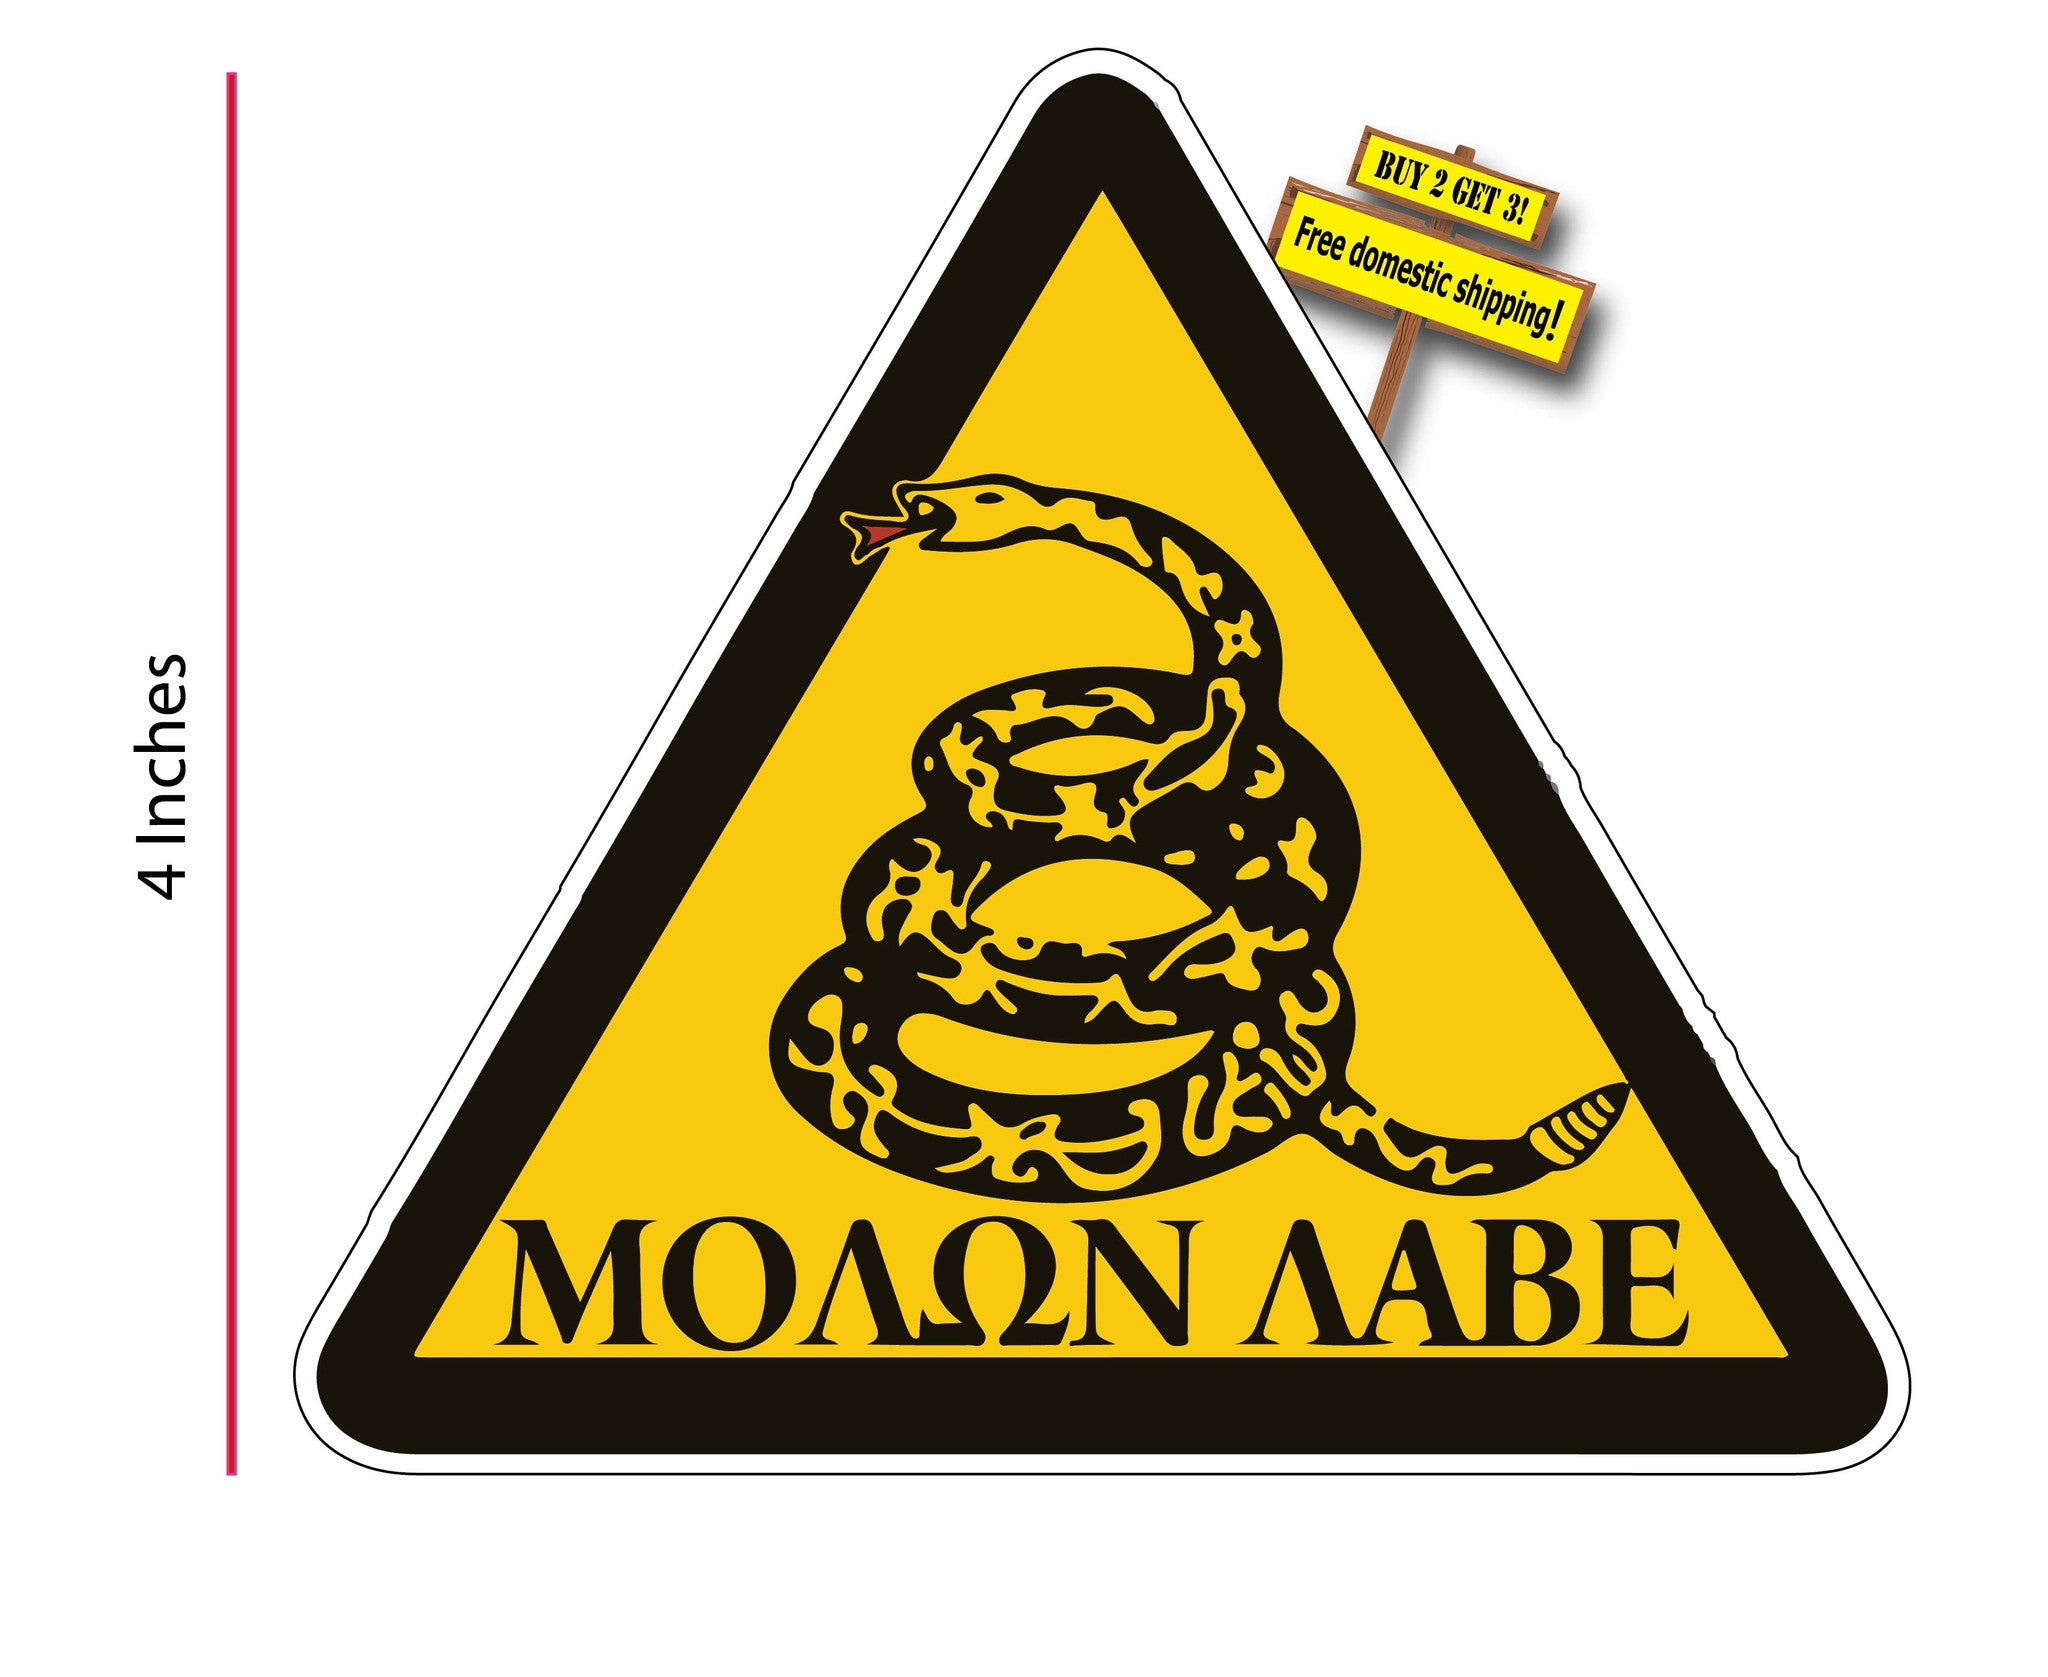 Banksy panda with guns sticker truck stickers logos and vinyl - Molon Labe Triangle Don T Tread On Me Gadsden Flag Gun Rights Decal Sticker Buy 2 Get 3 Free Shipping